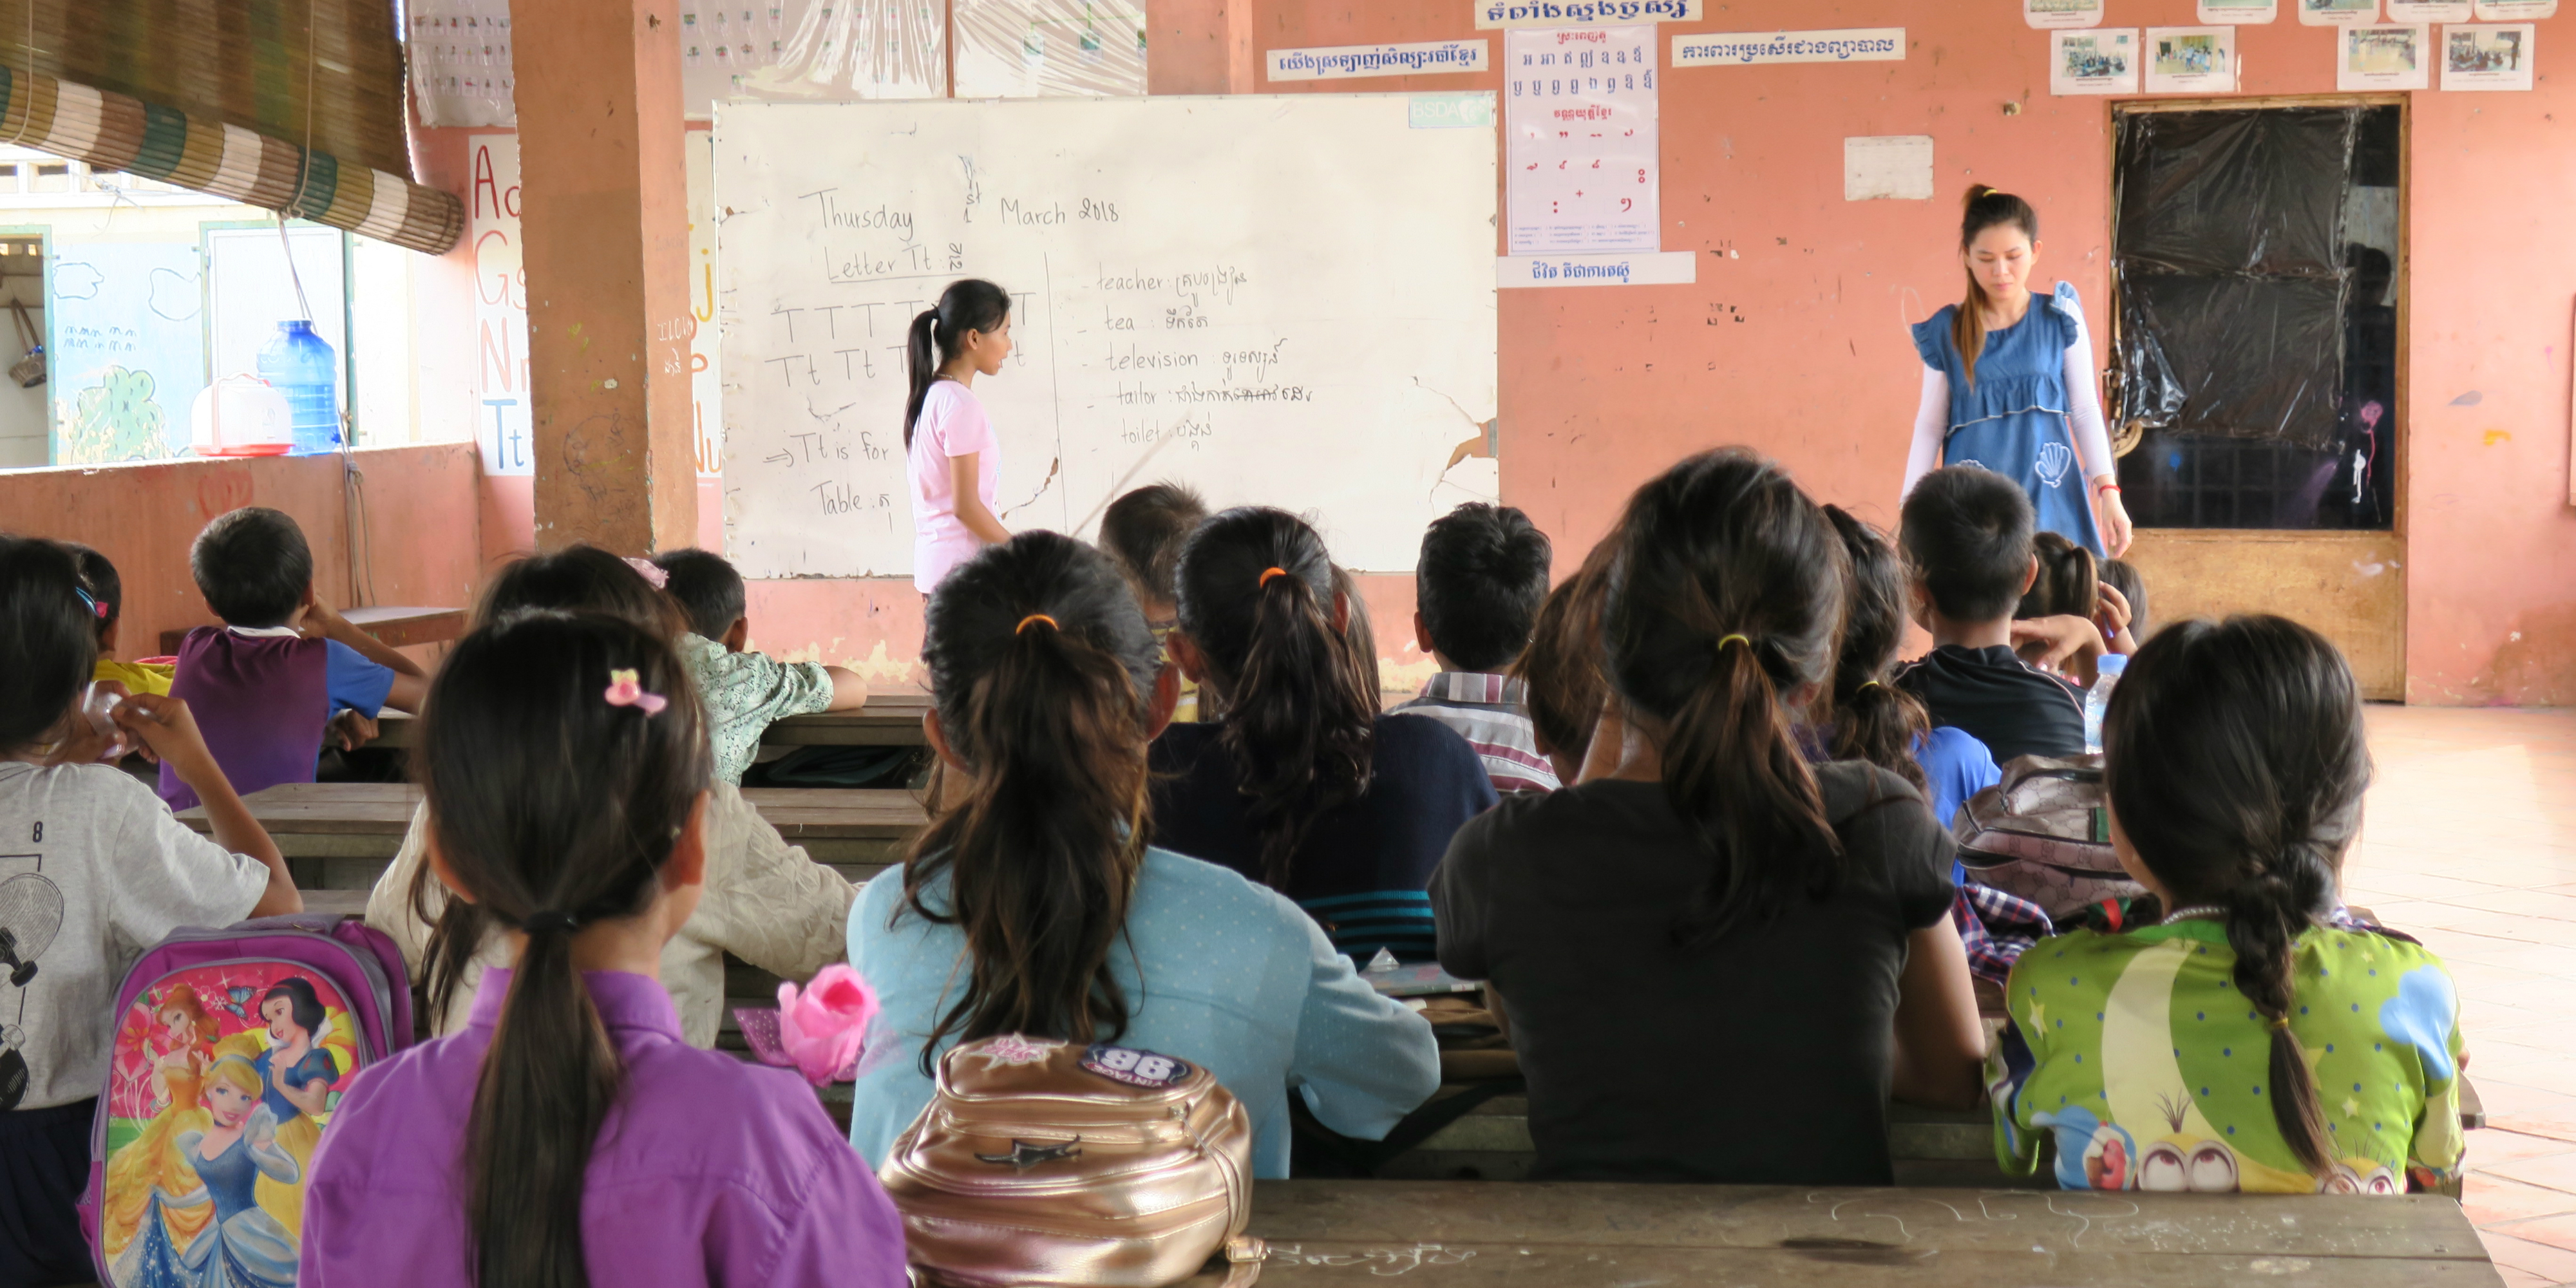 Children in Kampong Cham, Cambodia attend lessons at a local school. GVI partners with local schools and organisations to help increase educational capacity and meet local needs.